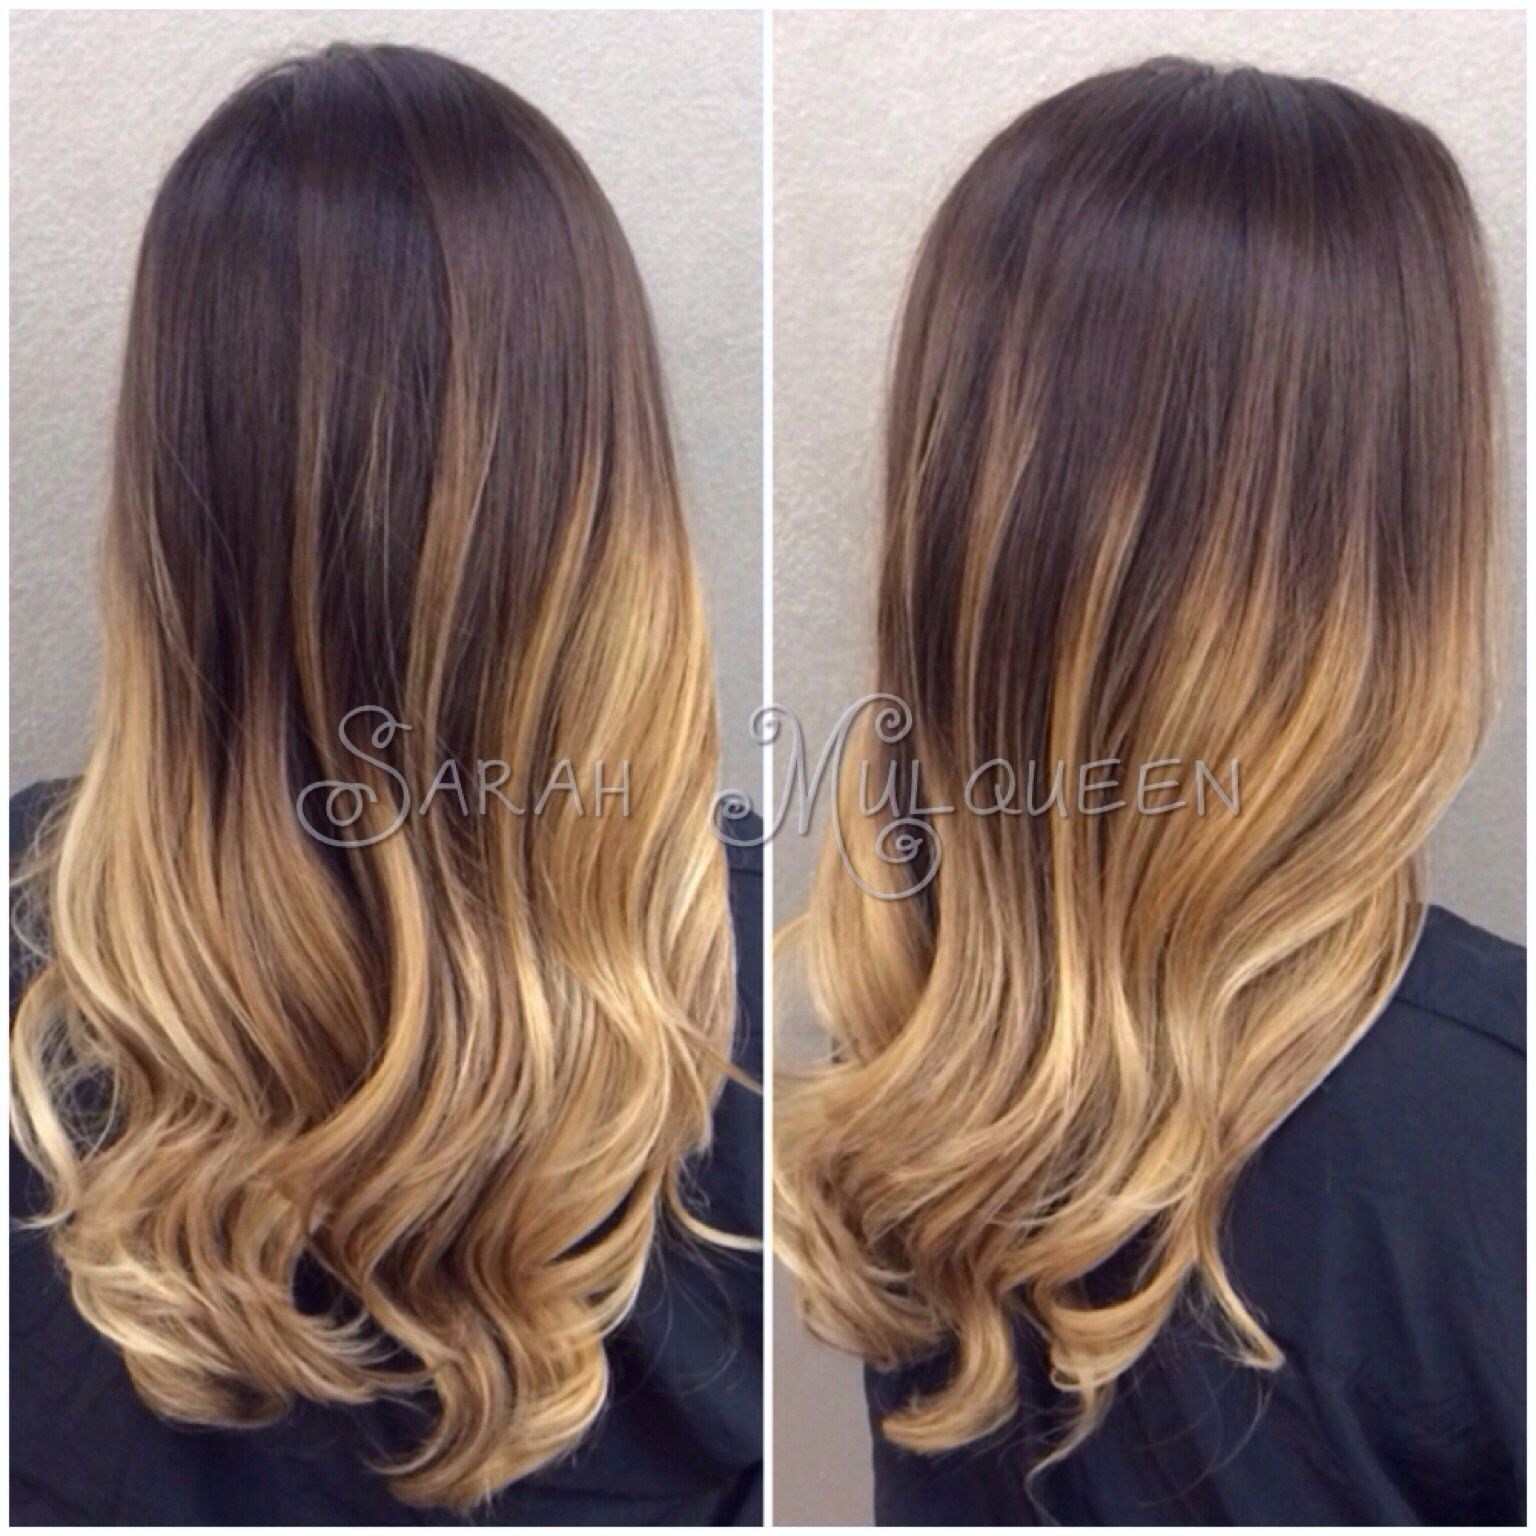 Ombre Hair By Sarah Mulqueen At Studio Fifty Fifty In Huntington